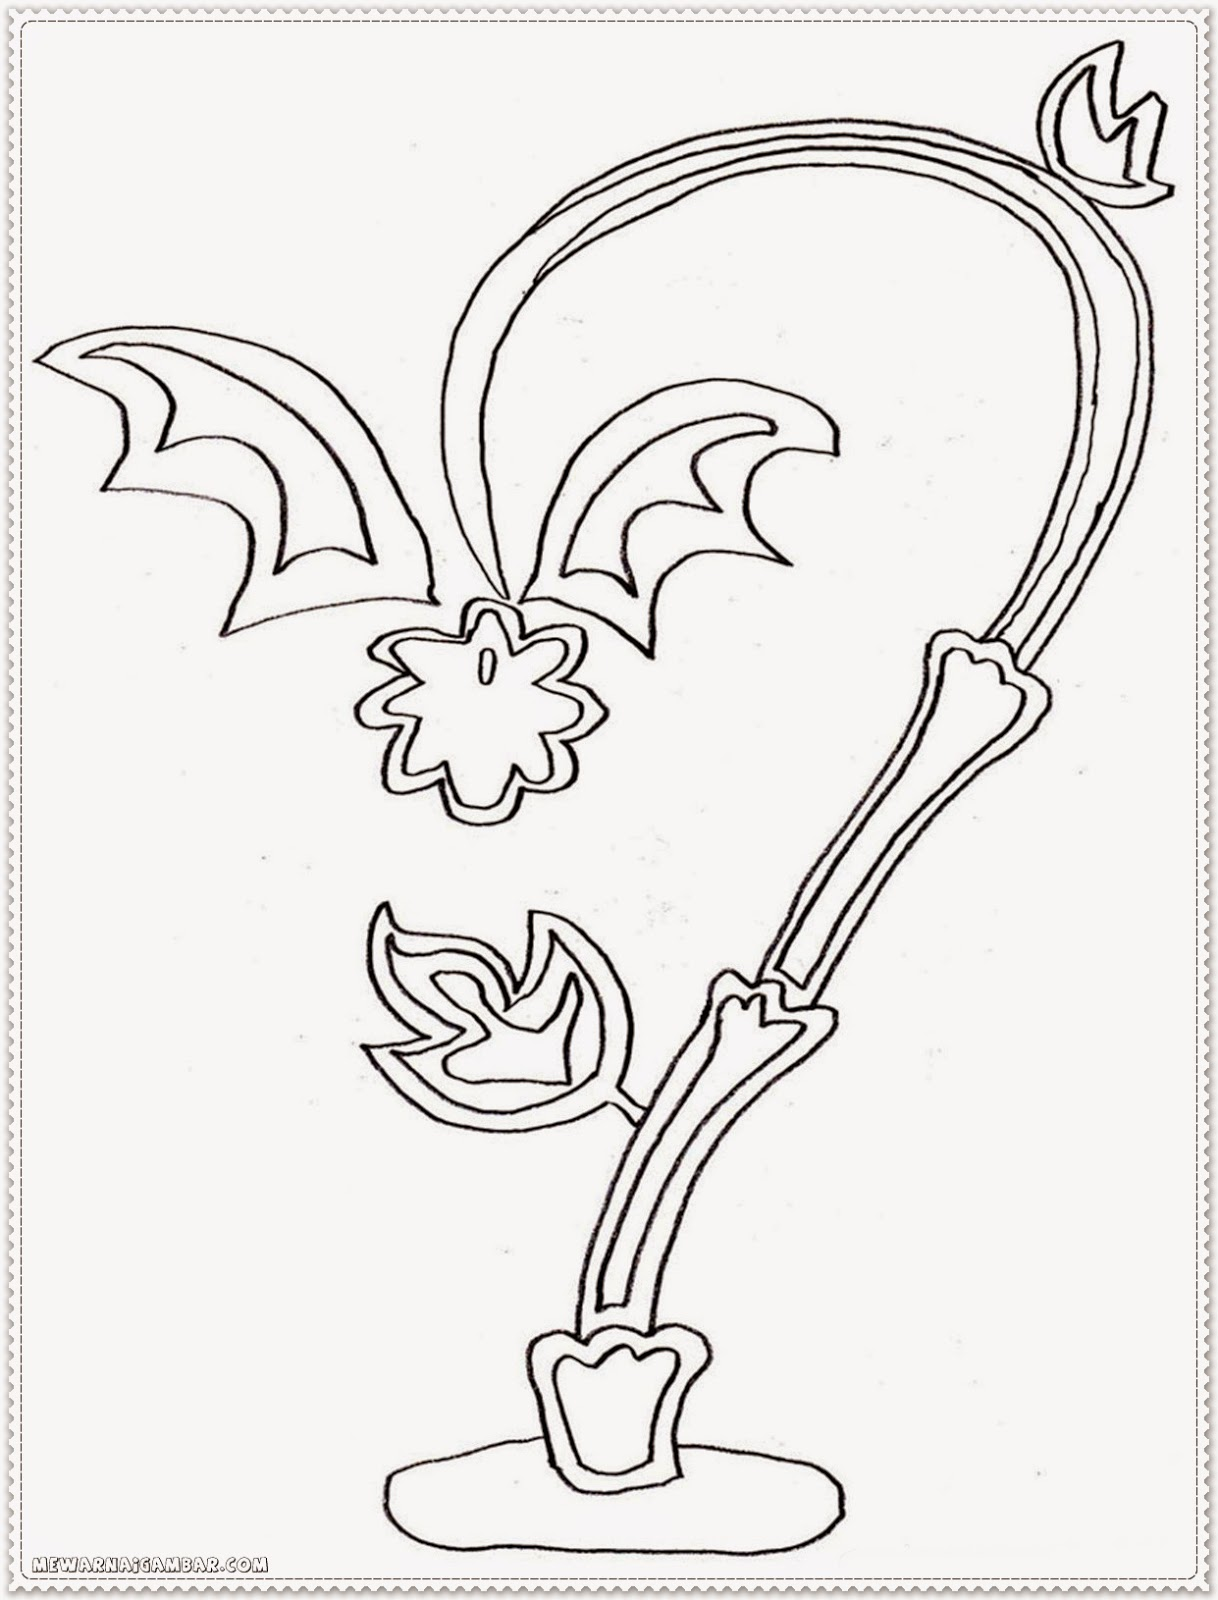 Coloring sheets of fruit trees - Dragon Fruit Tree Coloring Pages For Preschool